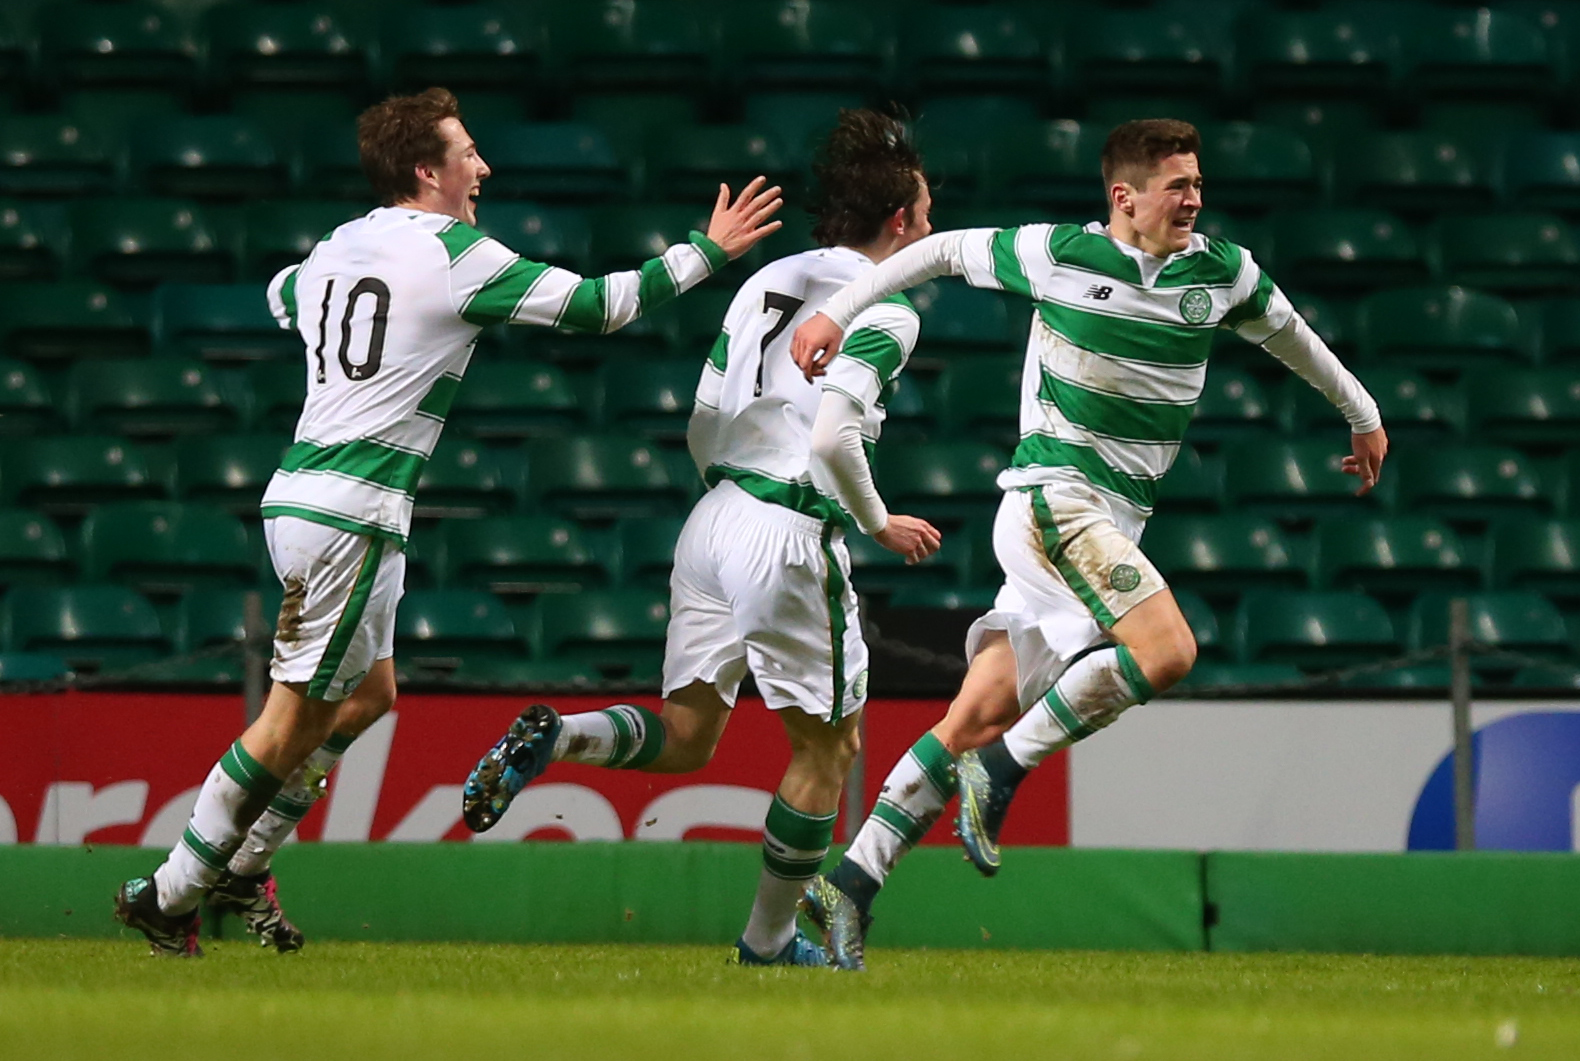 Jack Aitchison as a youngster in the UEFA Youth League